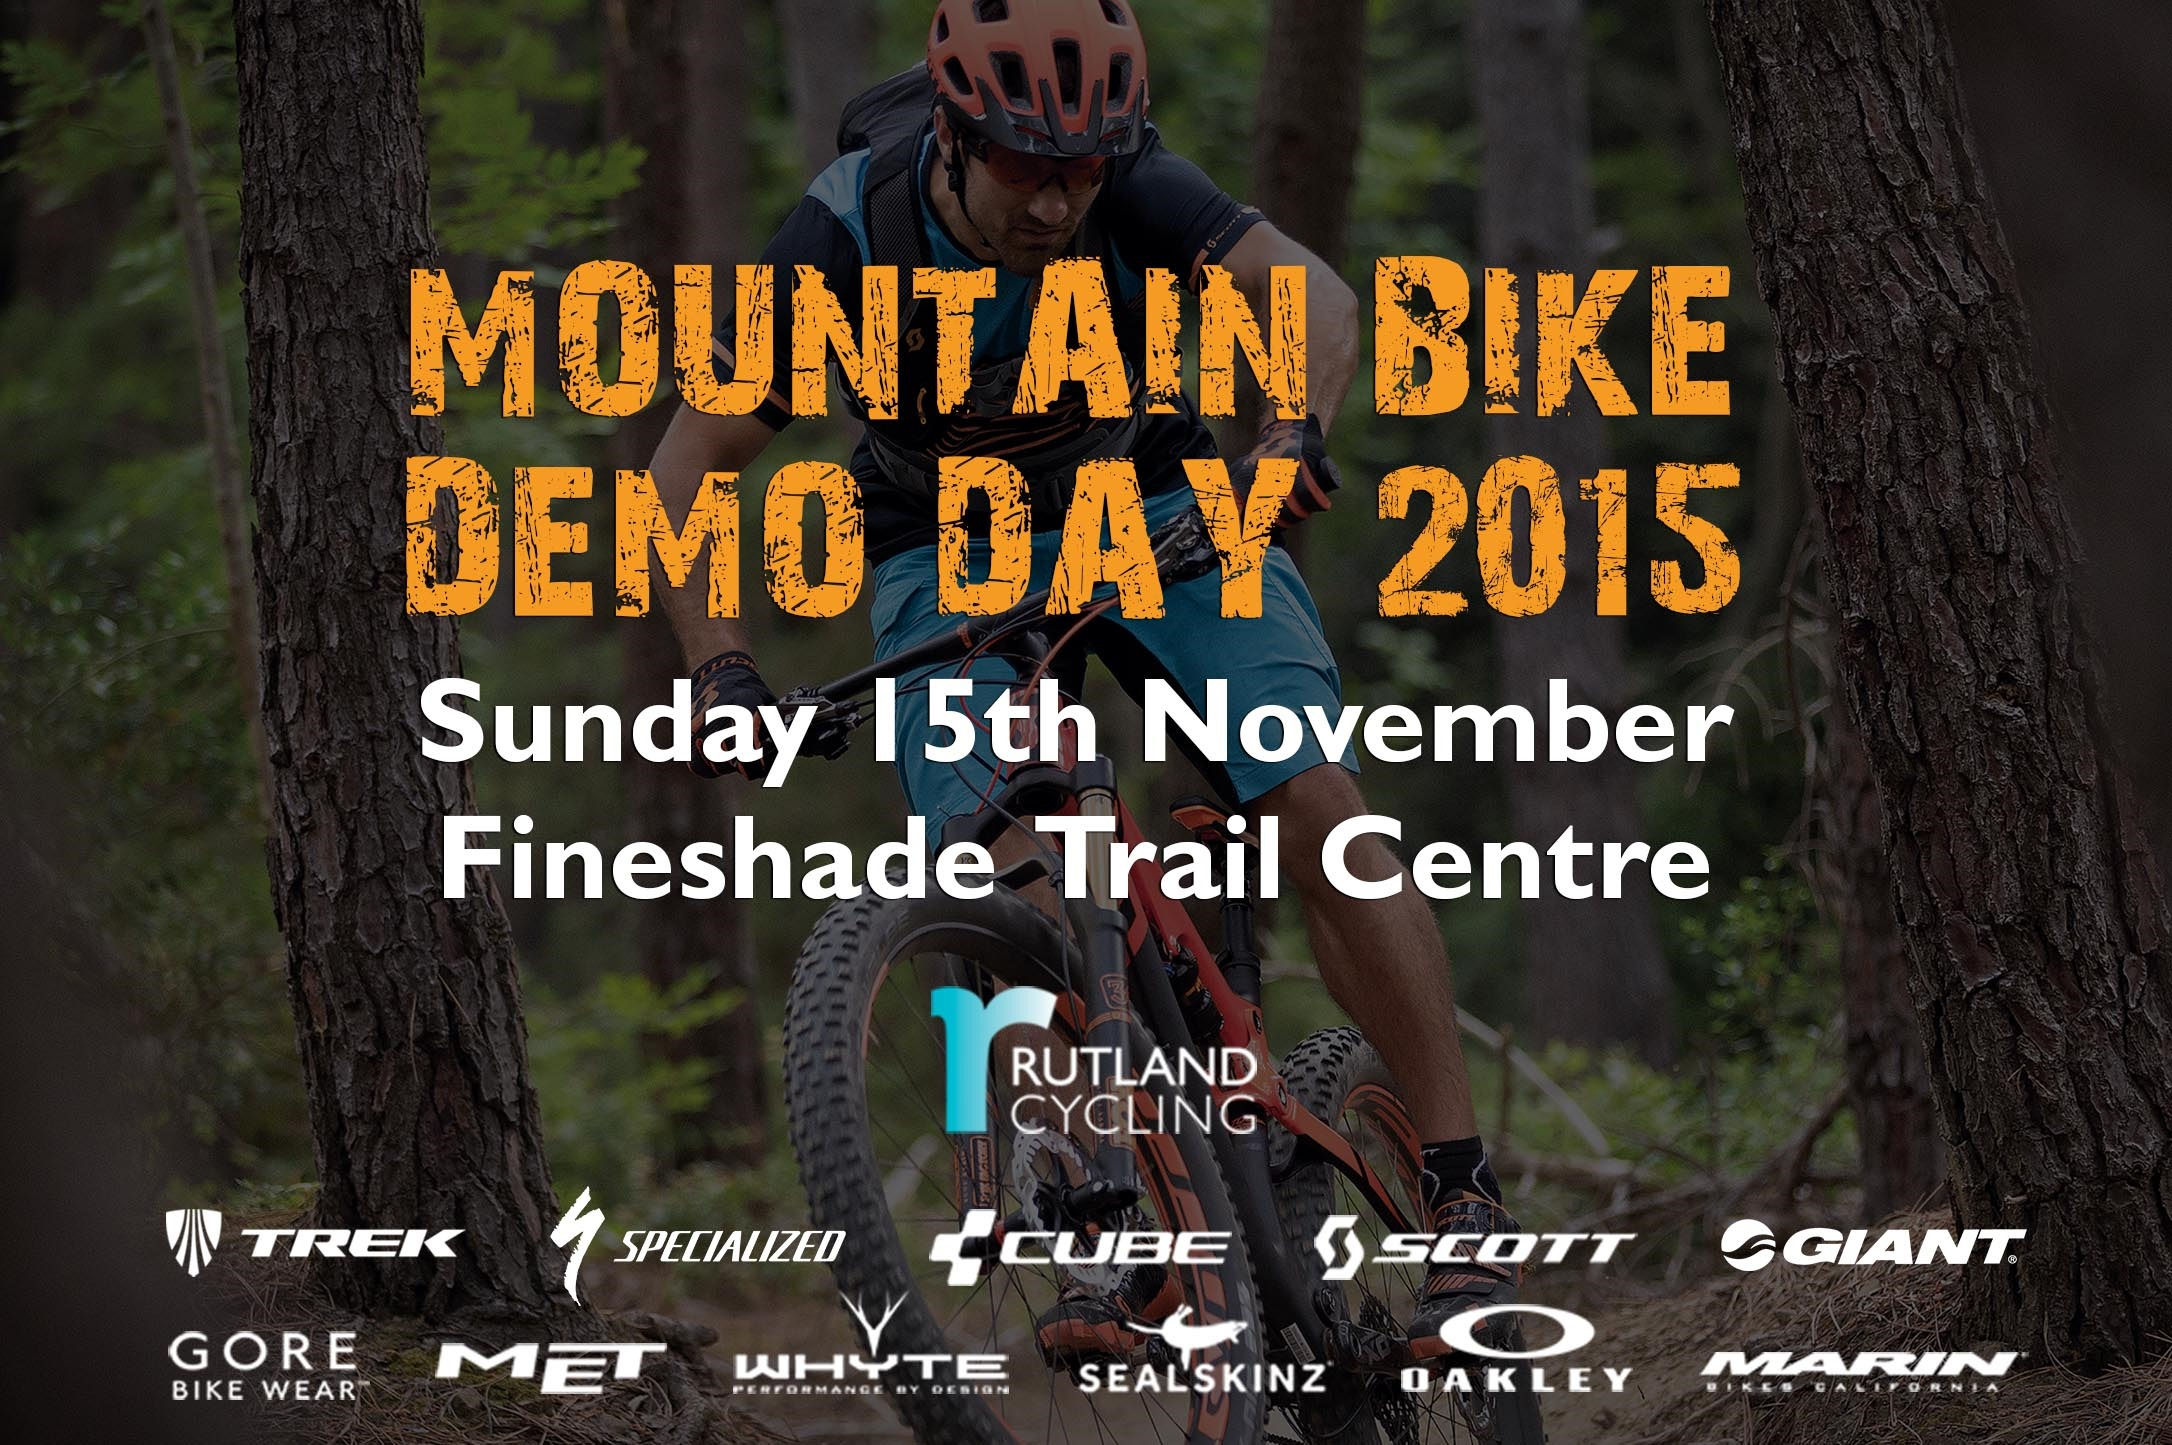 Rutland Cycling MTB Demo Day 2015